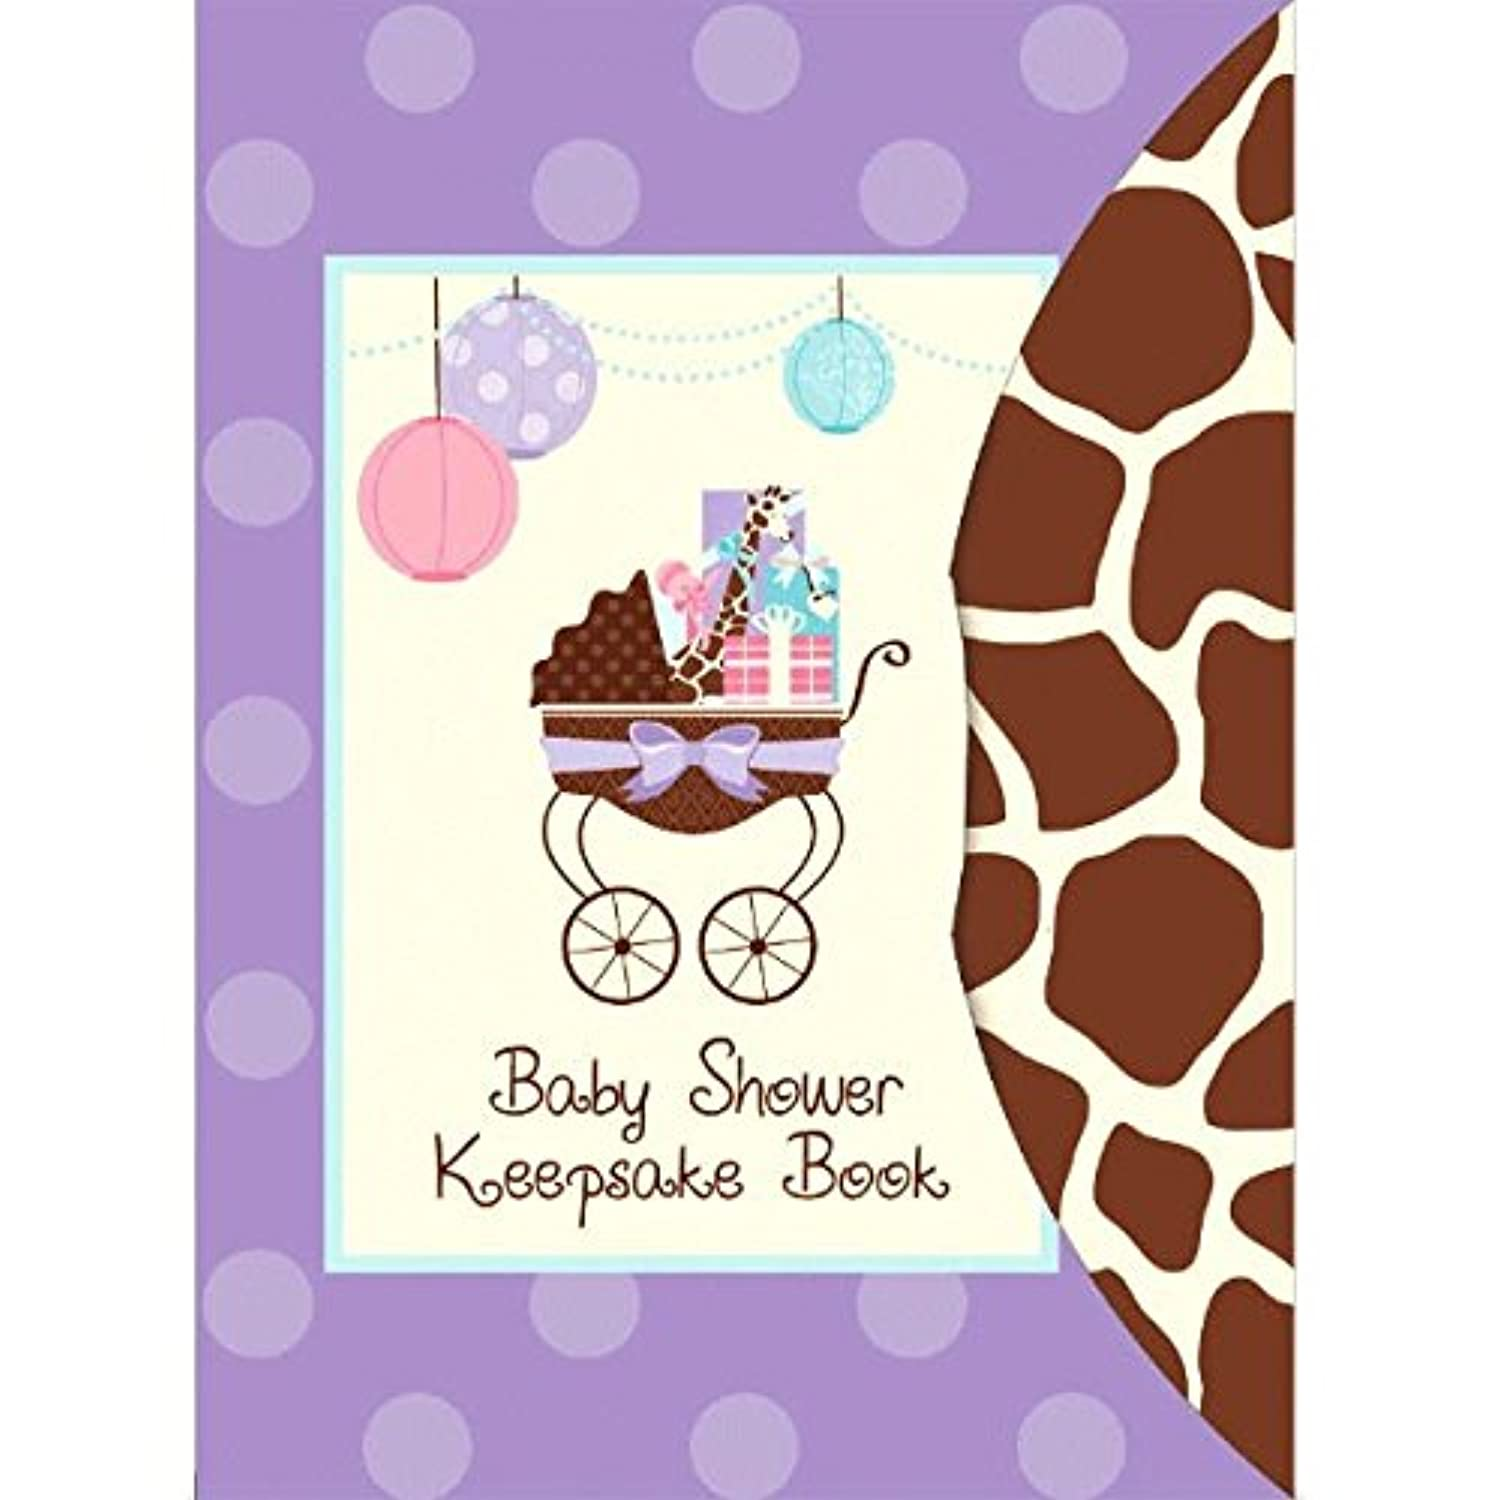 Amscan Modern Mommy Baby Shower Party Keepsake Book, 8-1/4 x 6